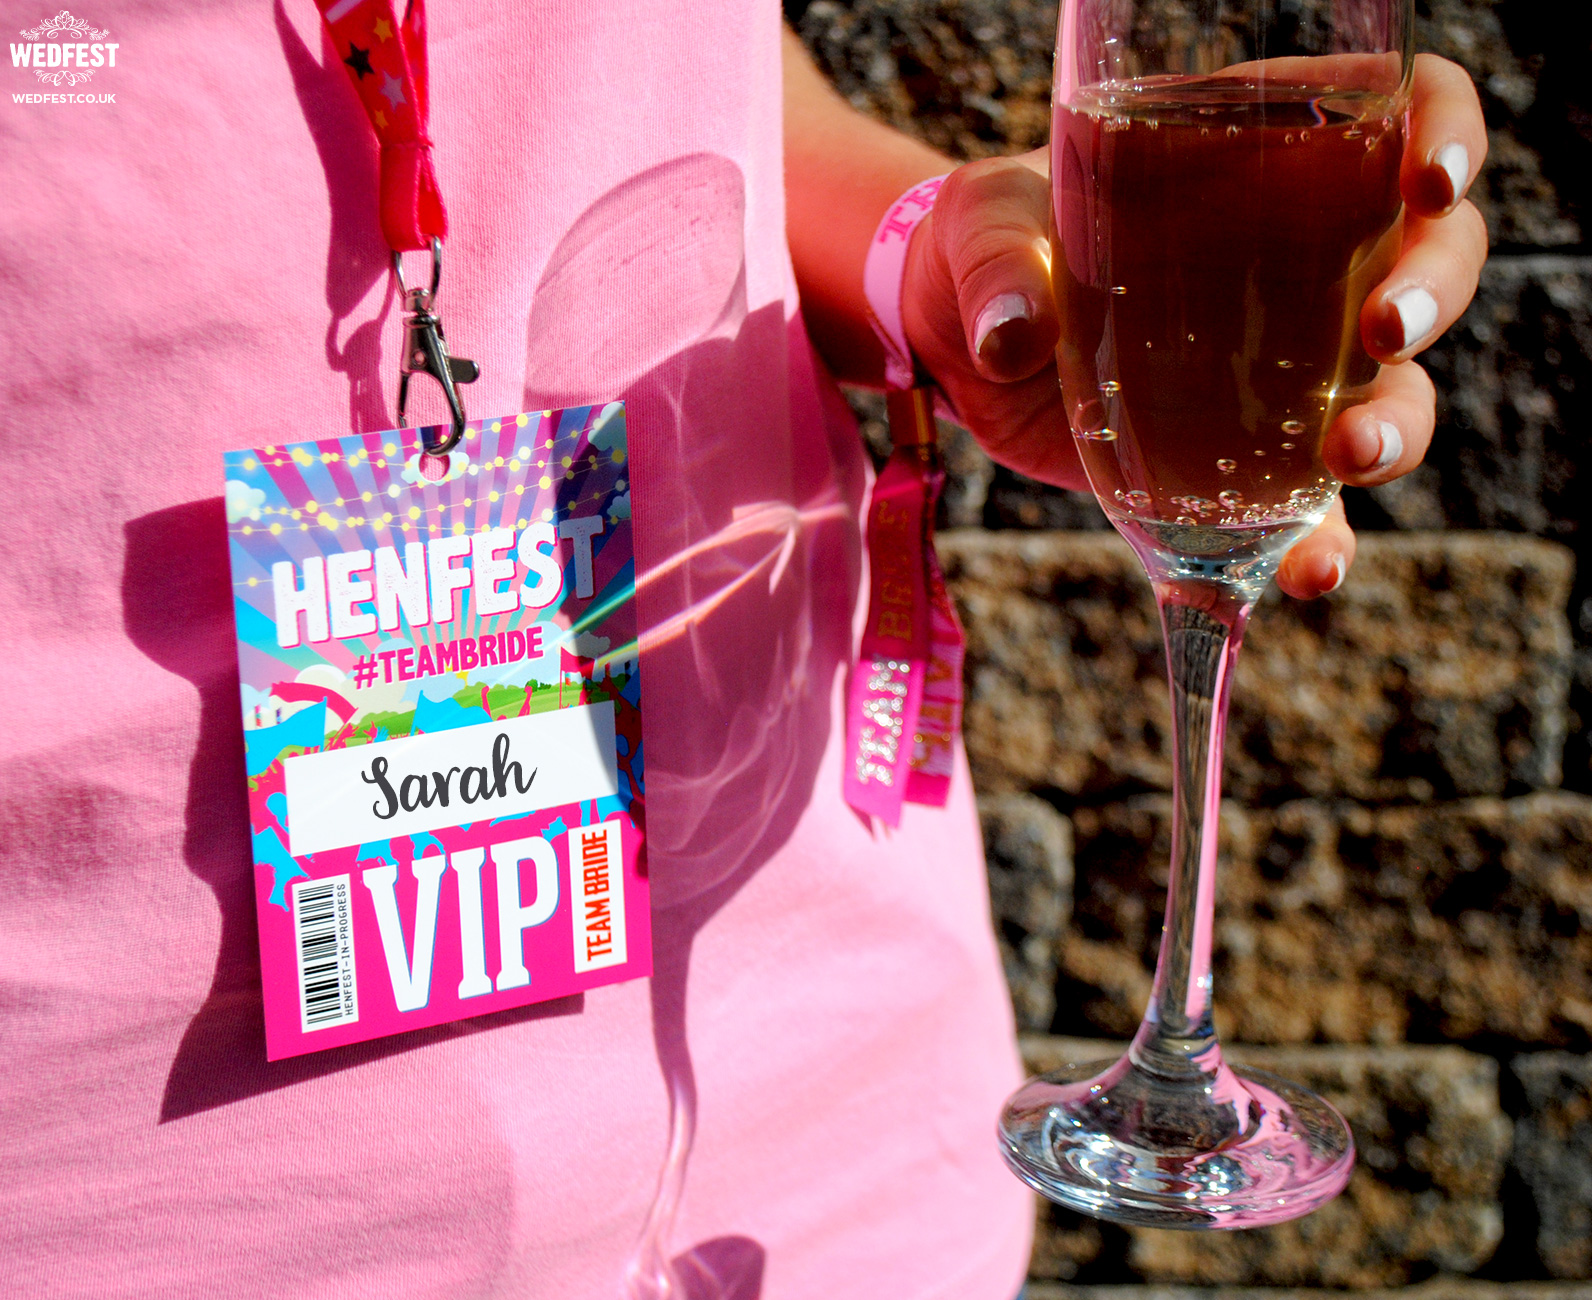 hen fest hen night vip pass lanyards